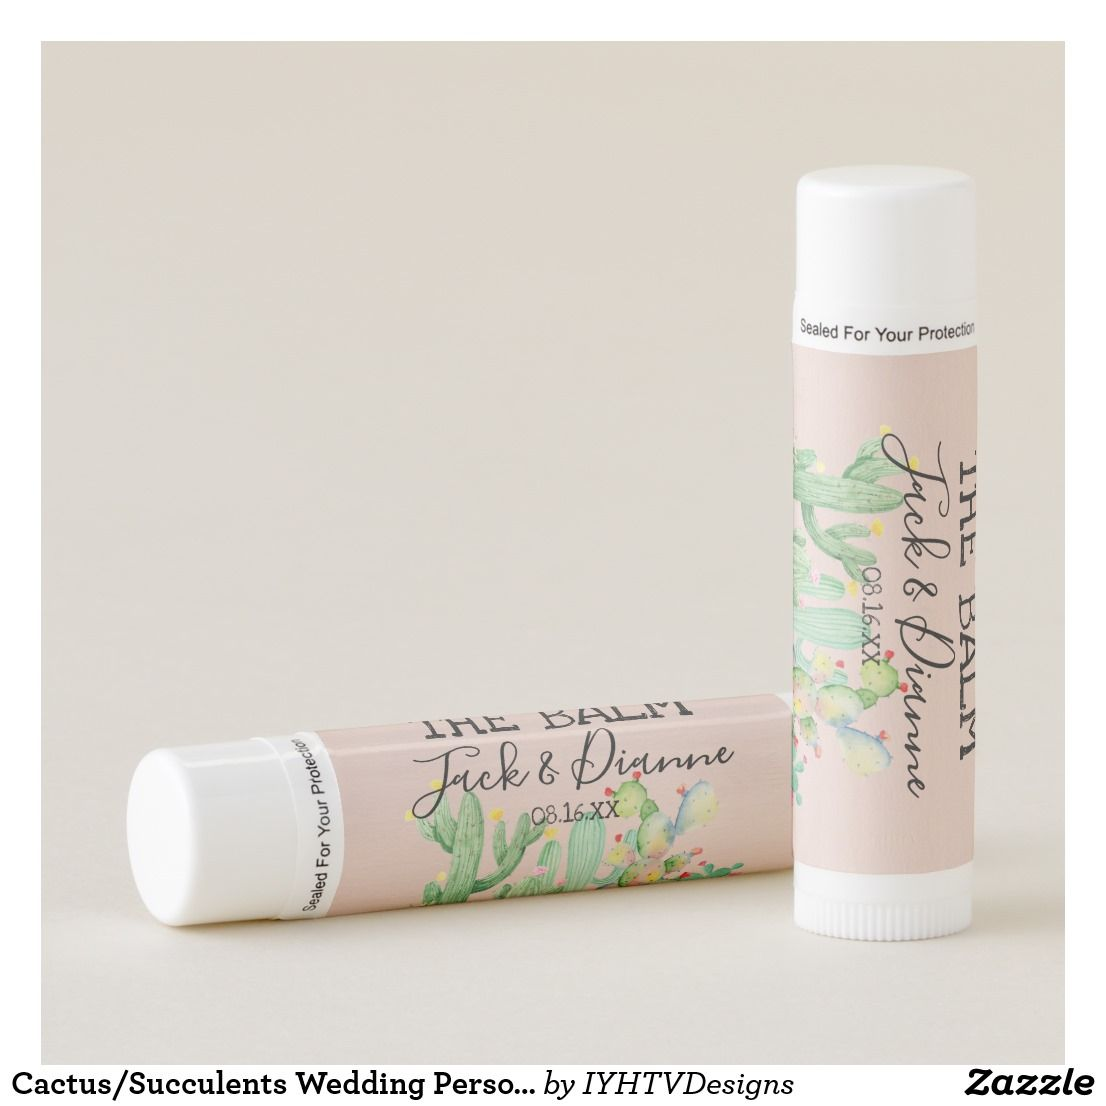 Cactus/Succulents Wedding Personalized Lip Balm These lip balms are ...